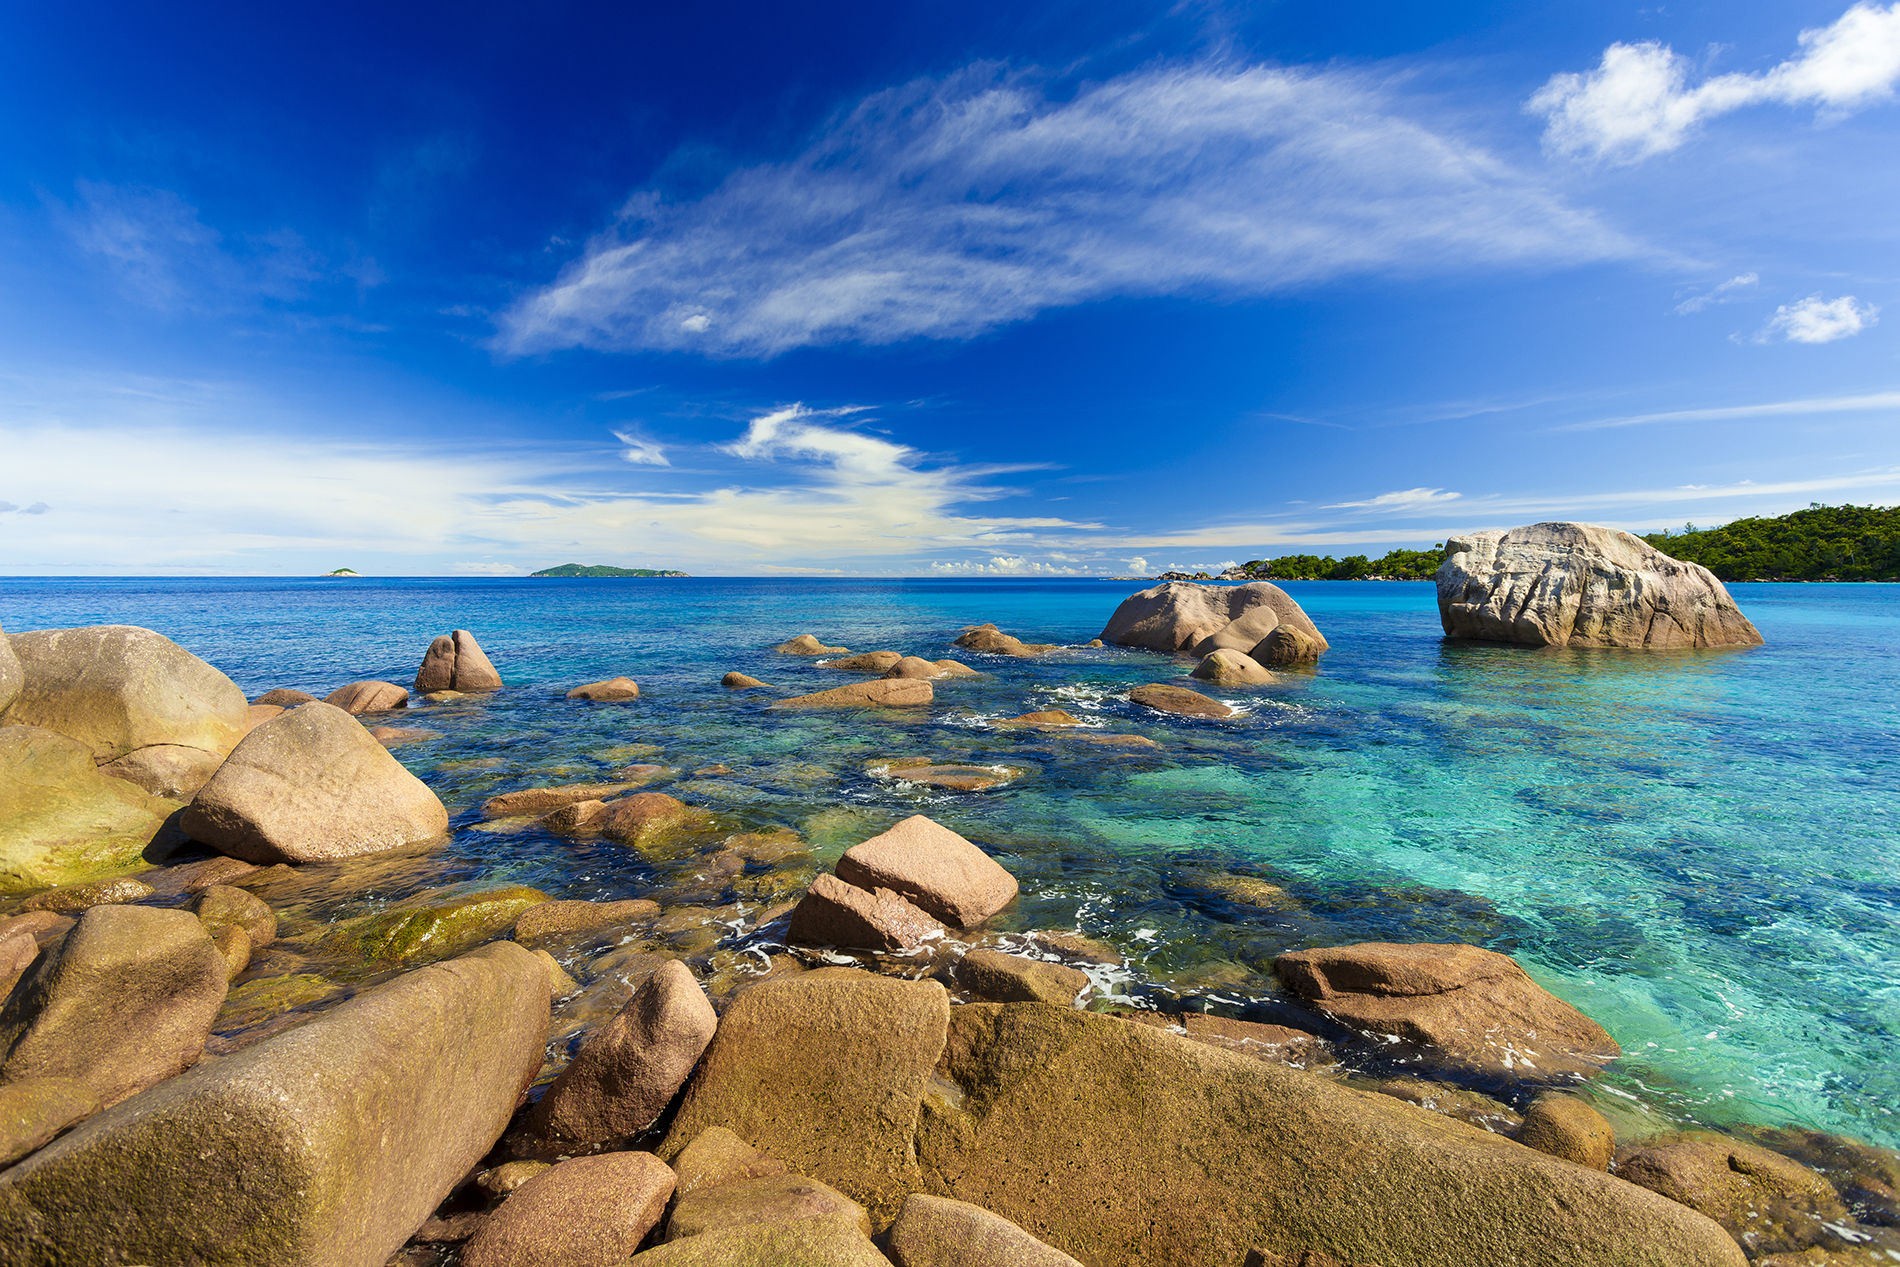 Rocky natural scenery in the shallow waters of the sea  54094